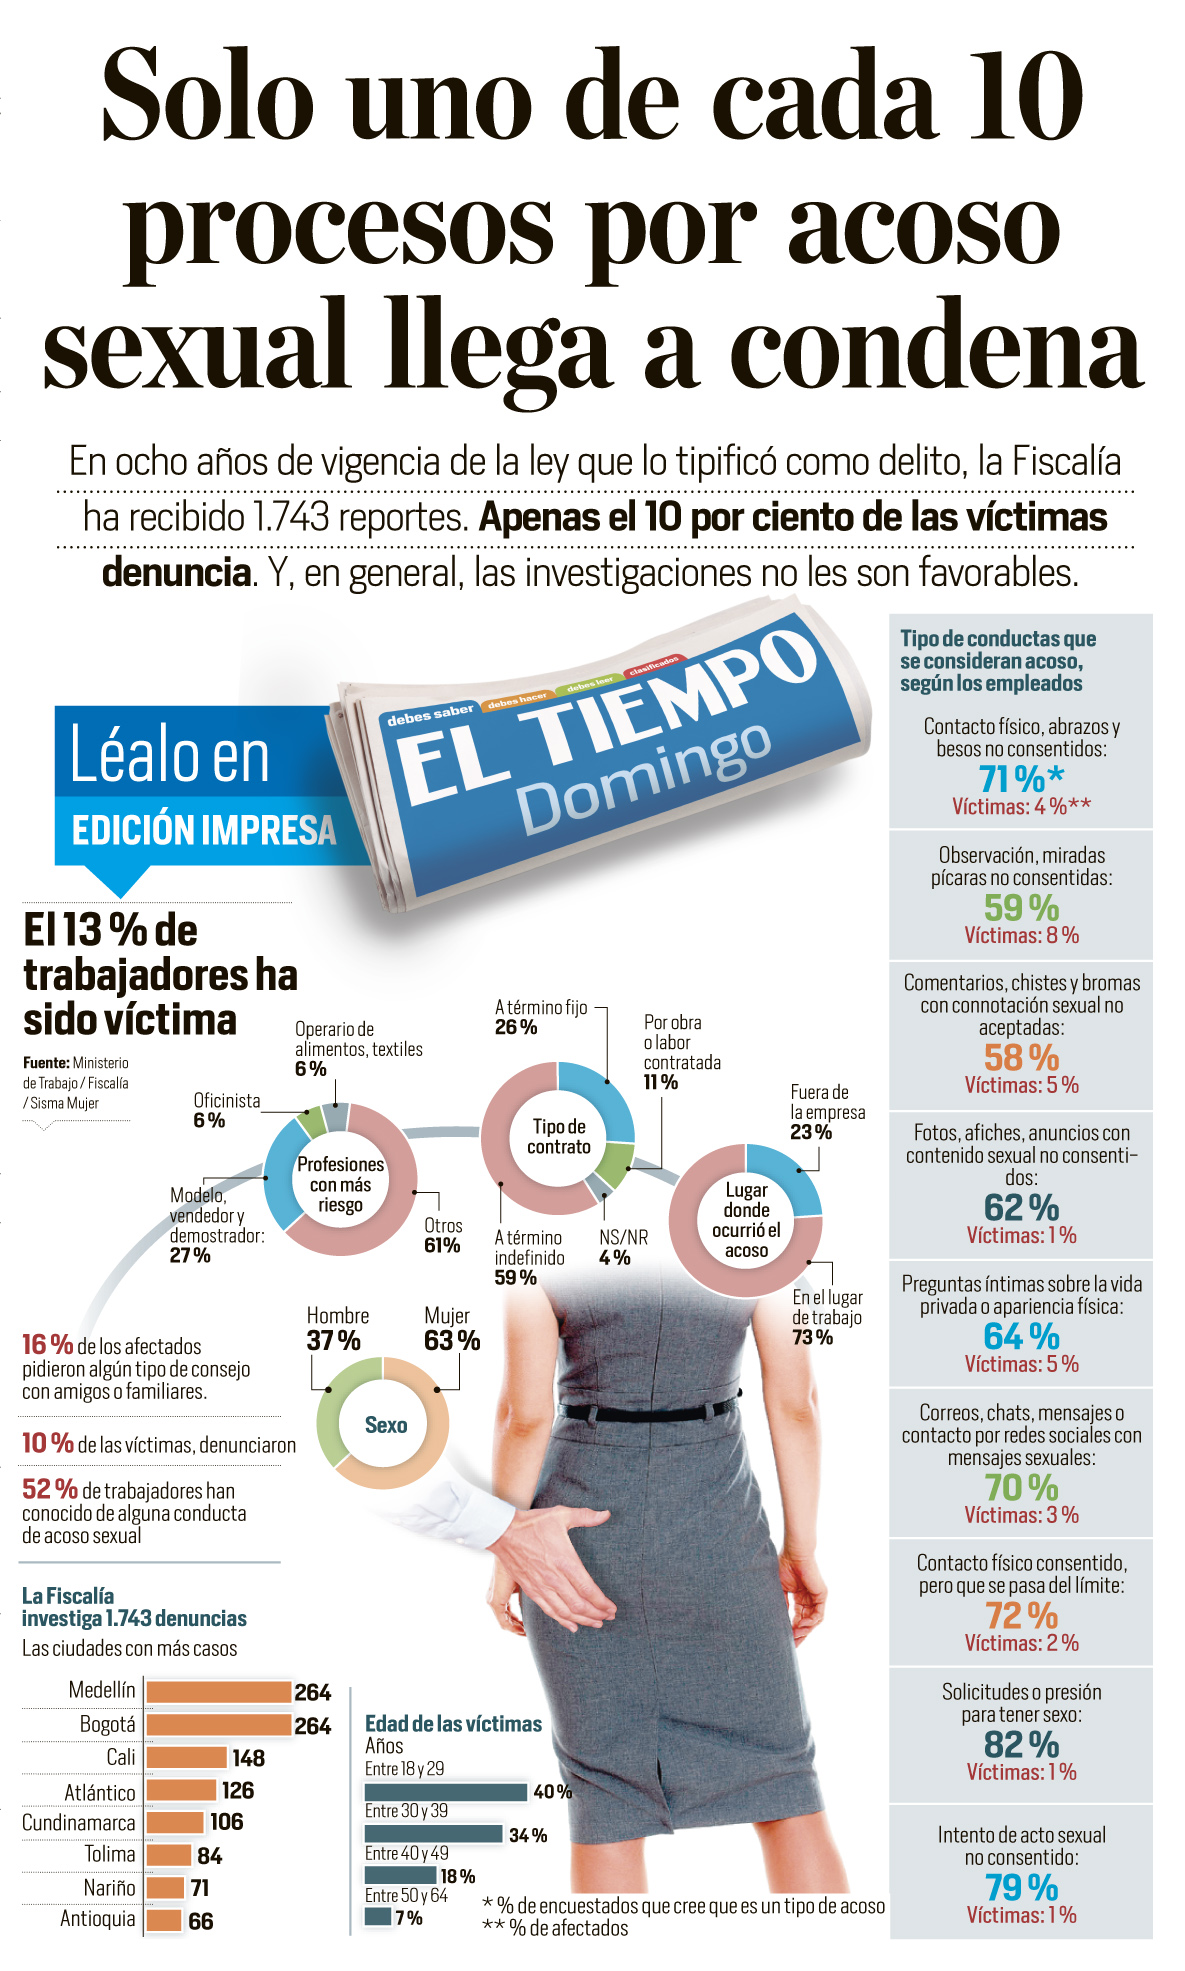 Promoting the Sunday Edition of EL TIEMPO throug Social Media